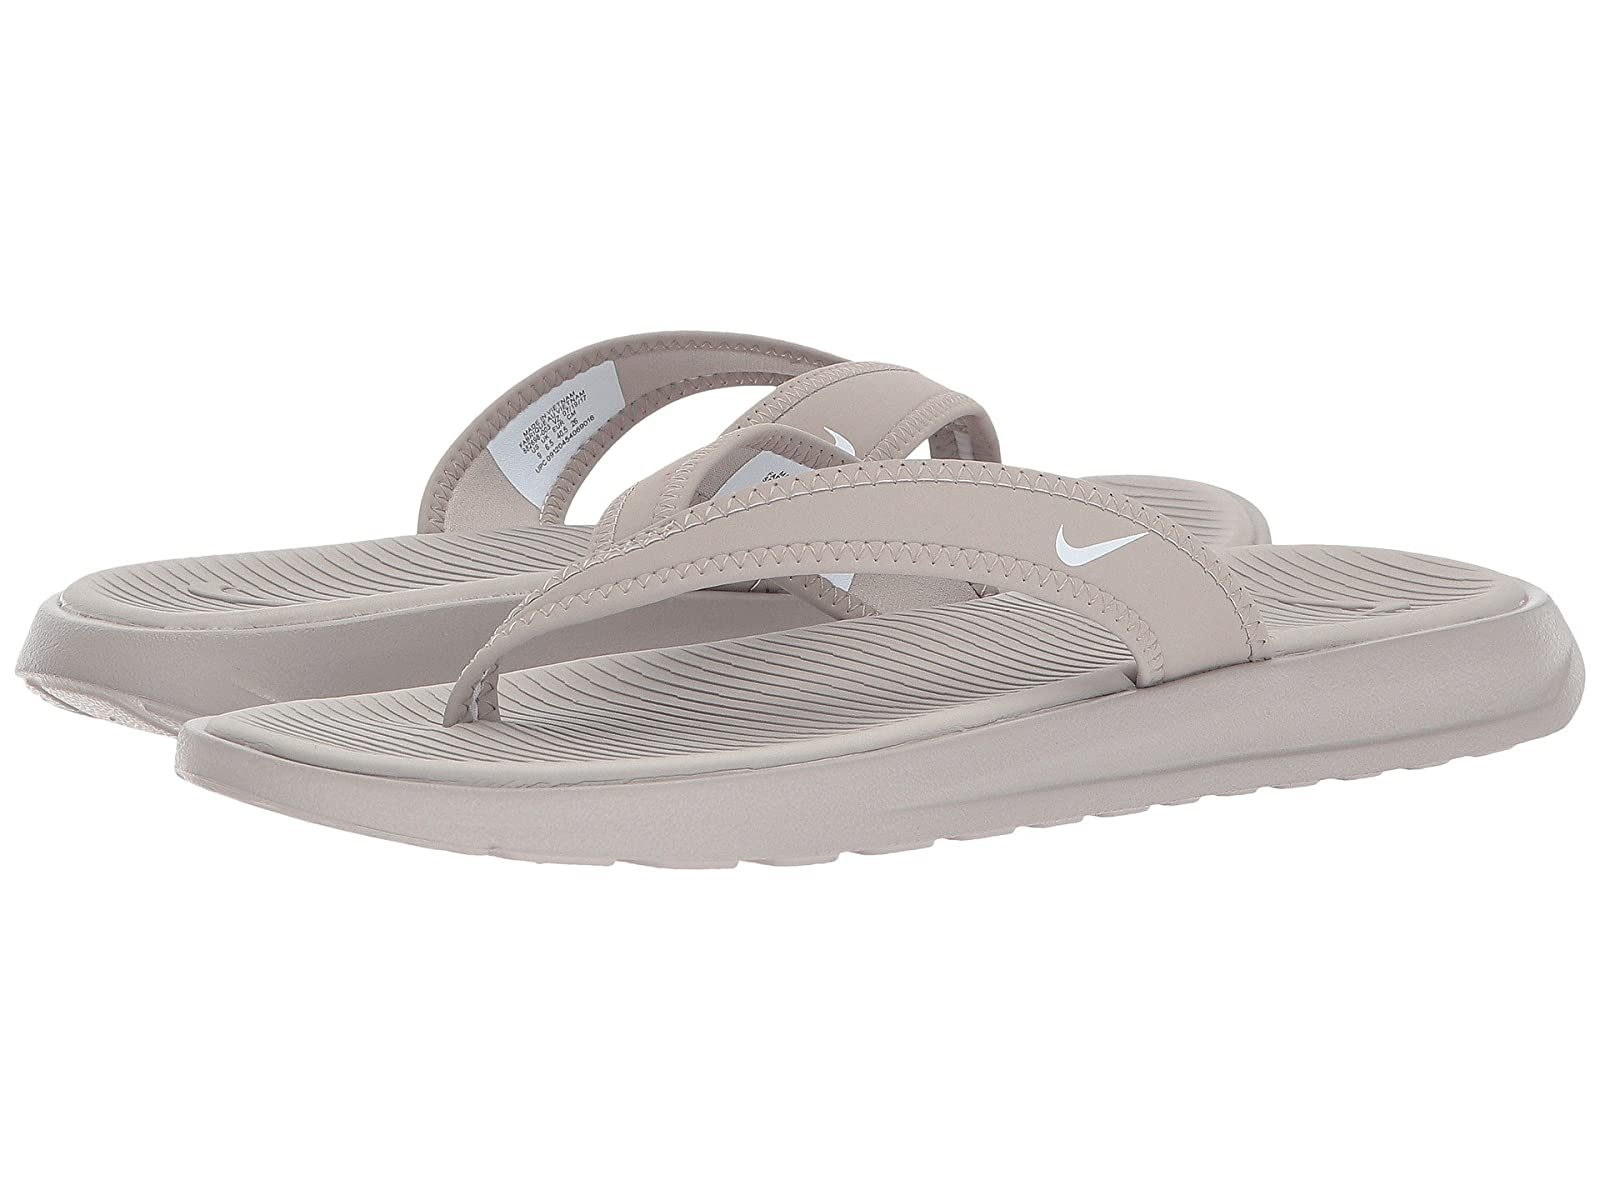 Nike Ultra Celso ThongAtmospheric grades have affordable shoes